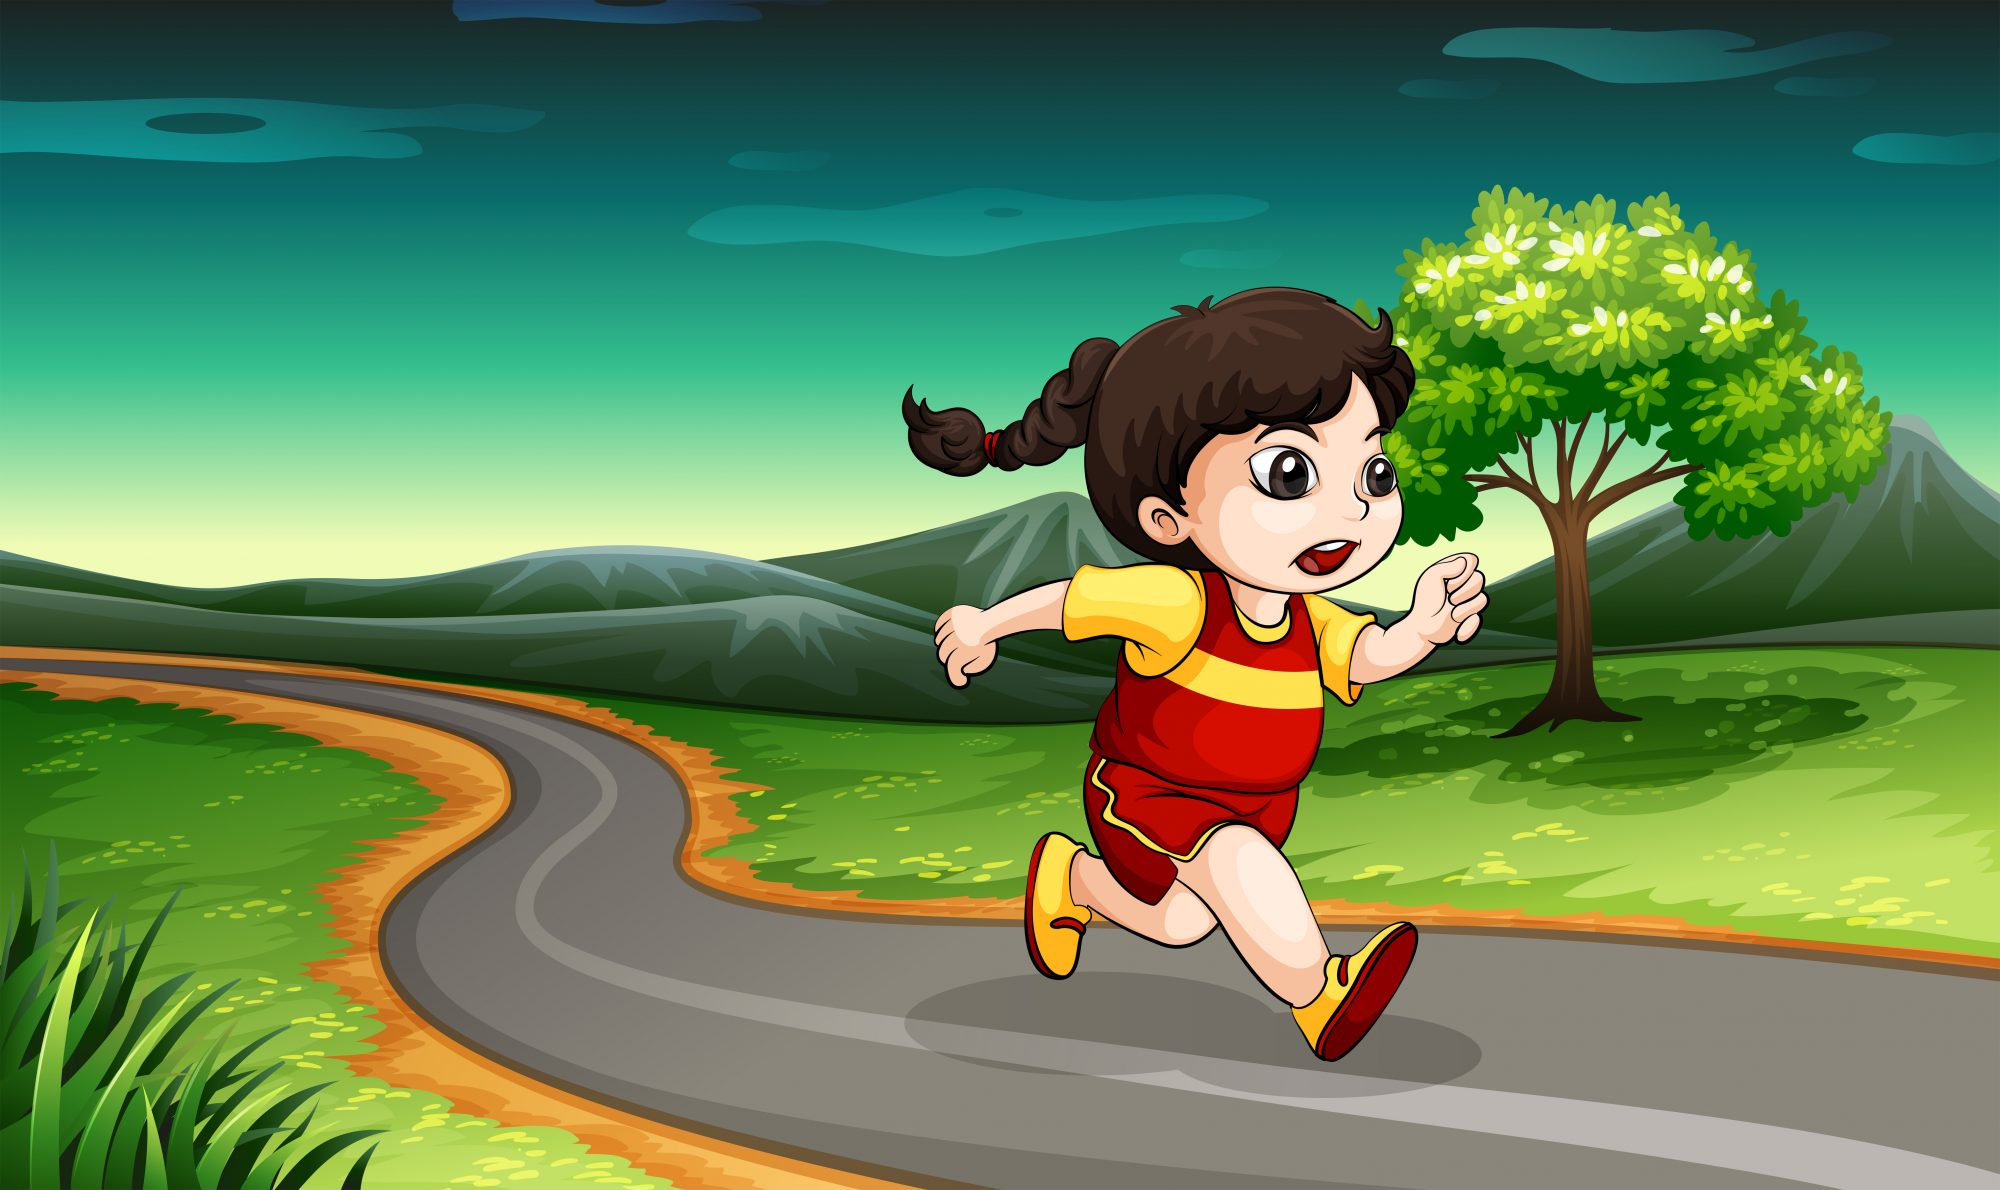 A young girl running